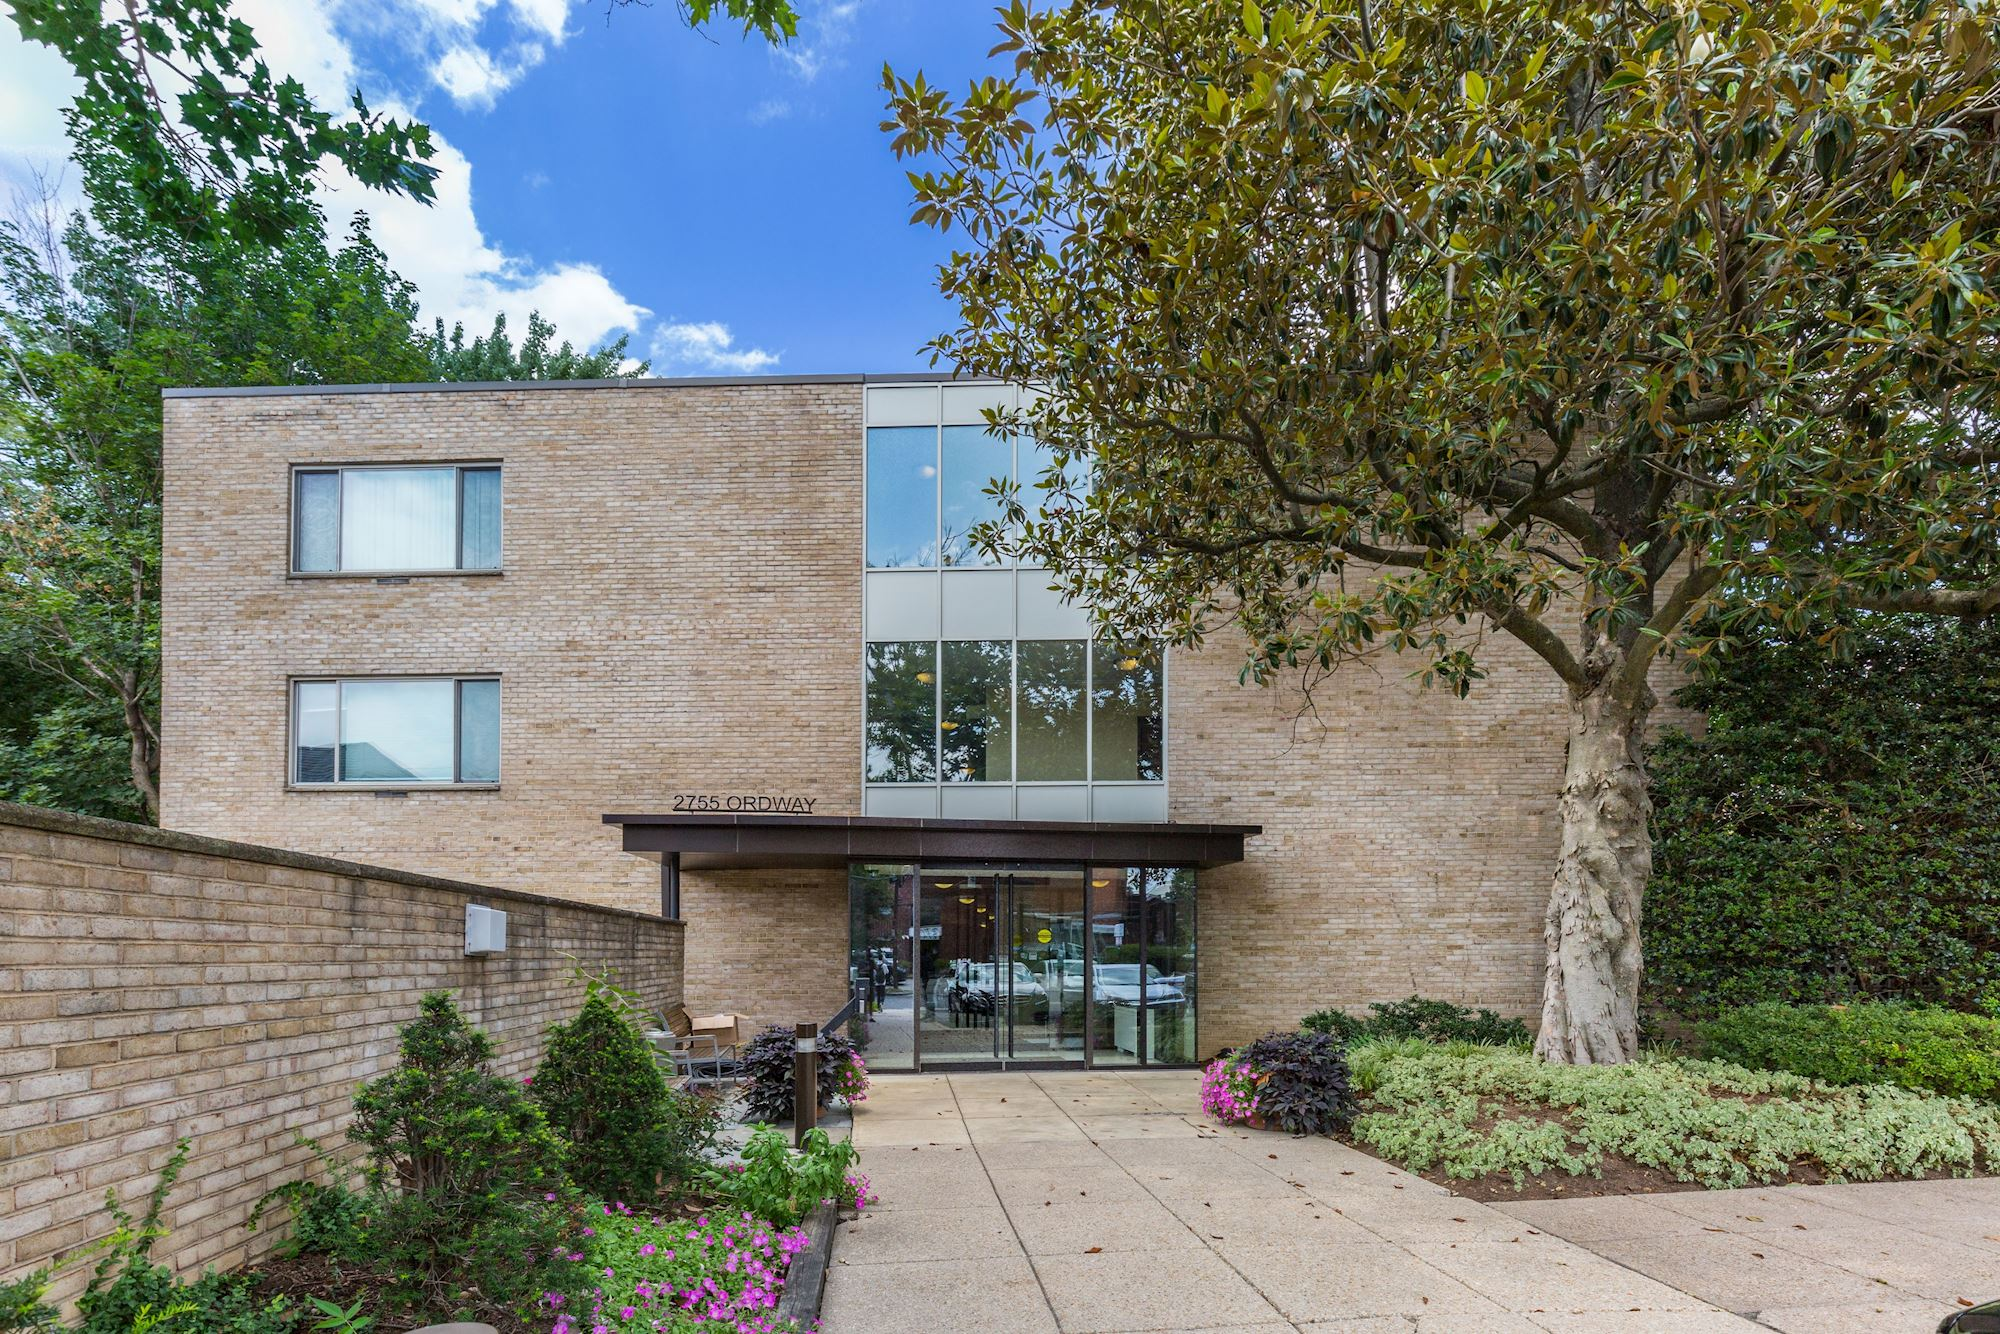 001_2755_ORDWAY_STREET_NW_UNIT_312_250569_393764